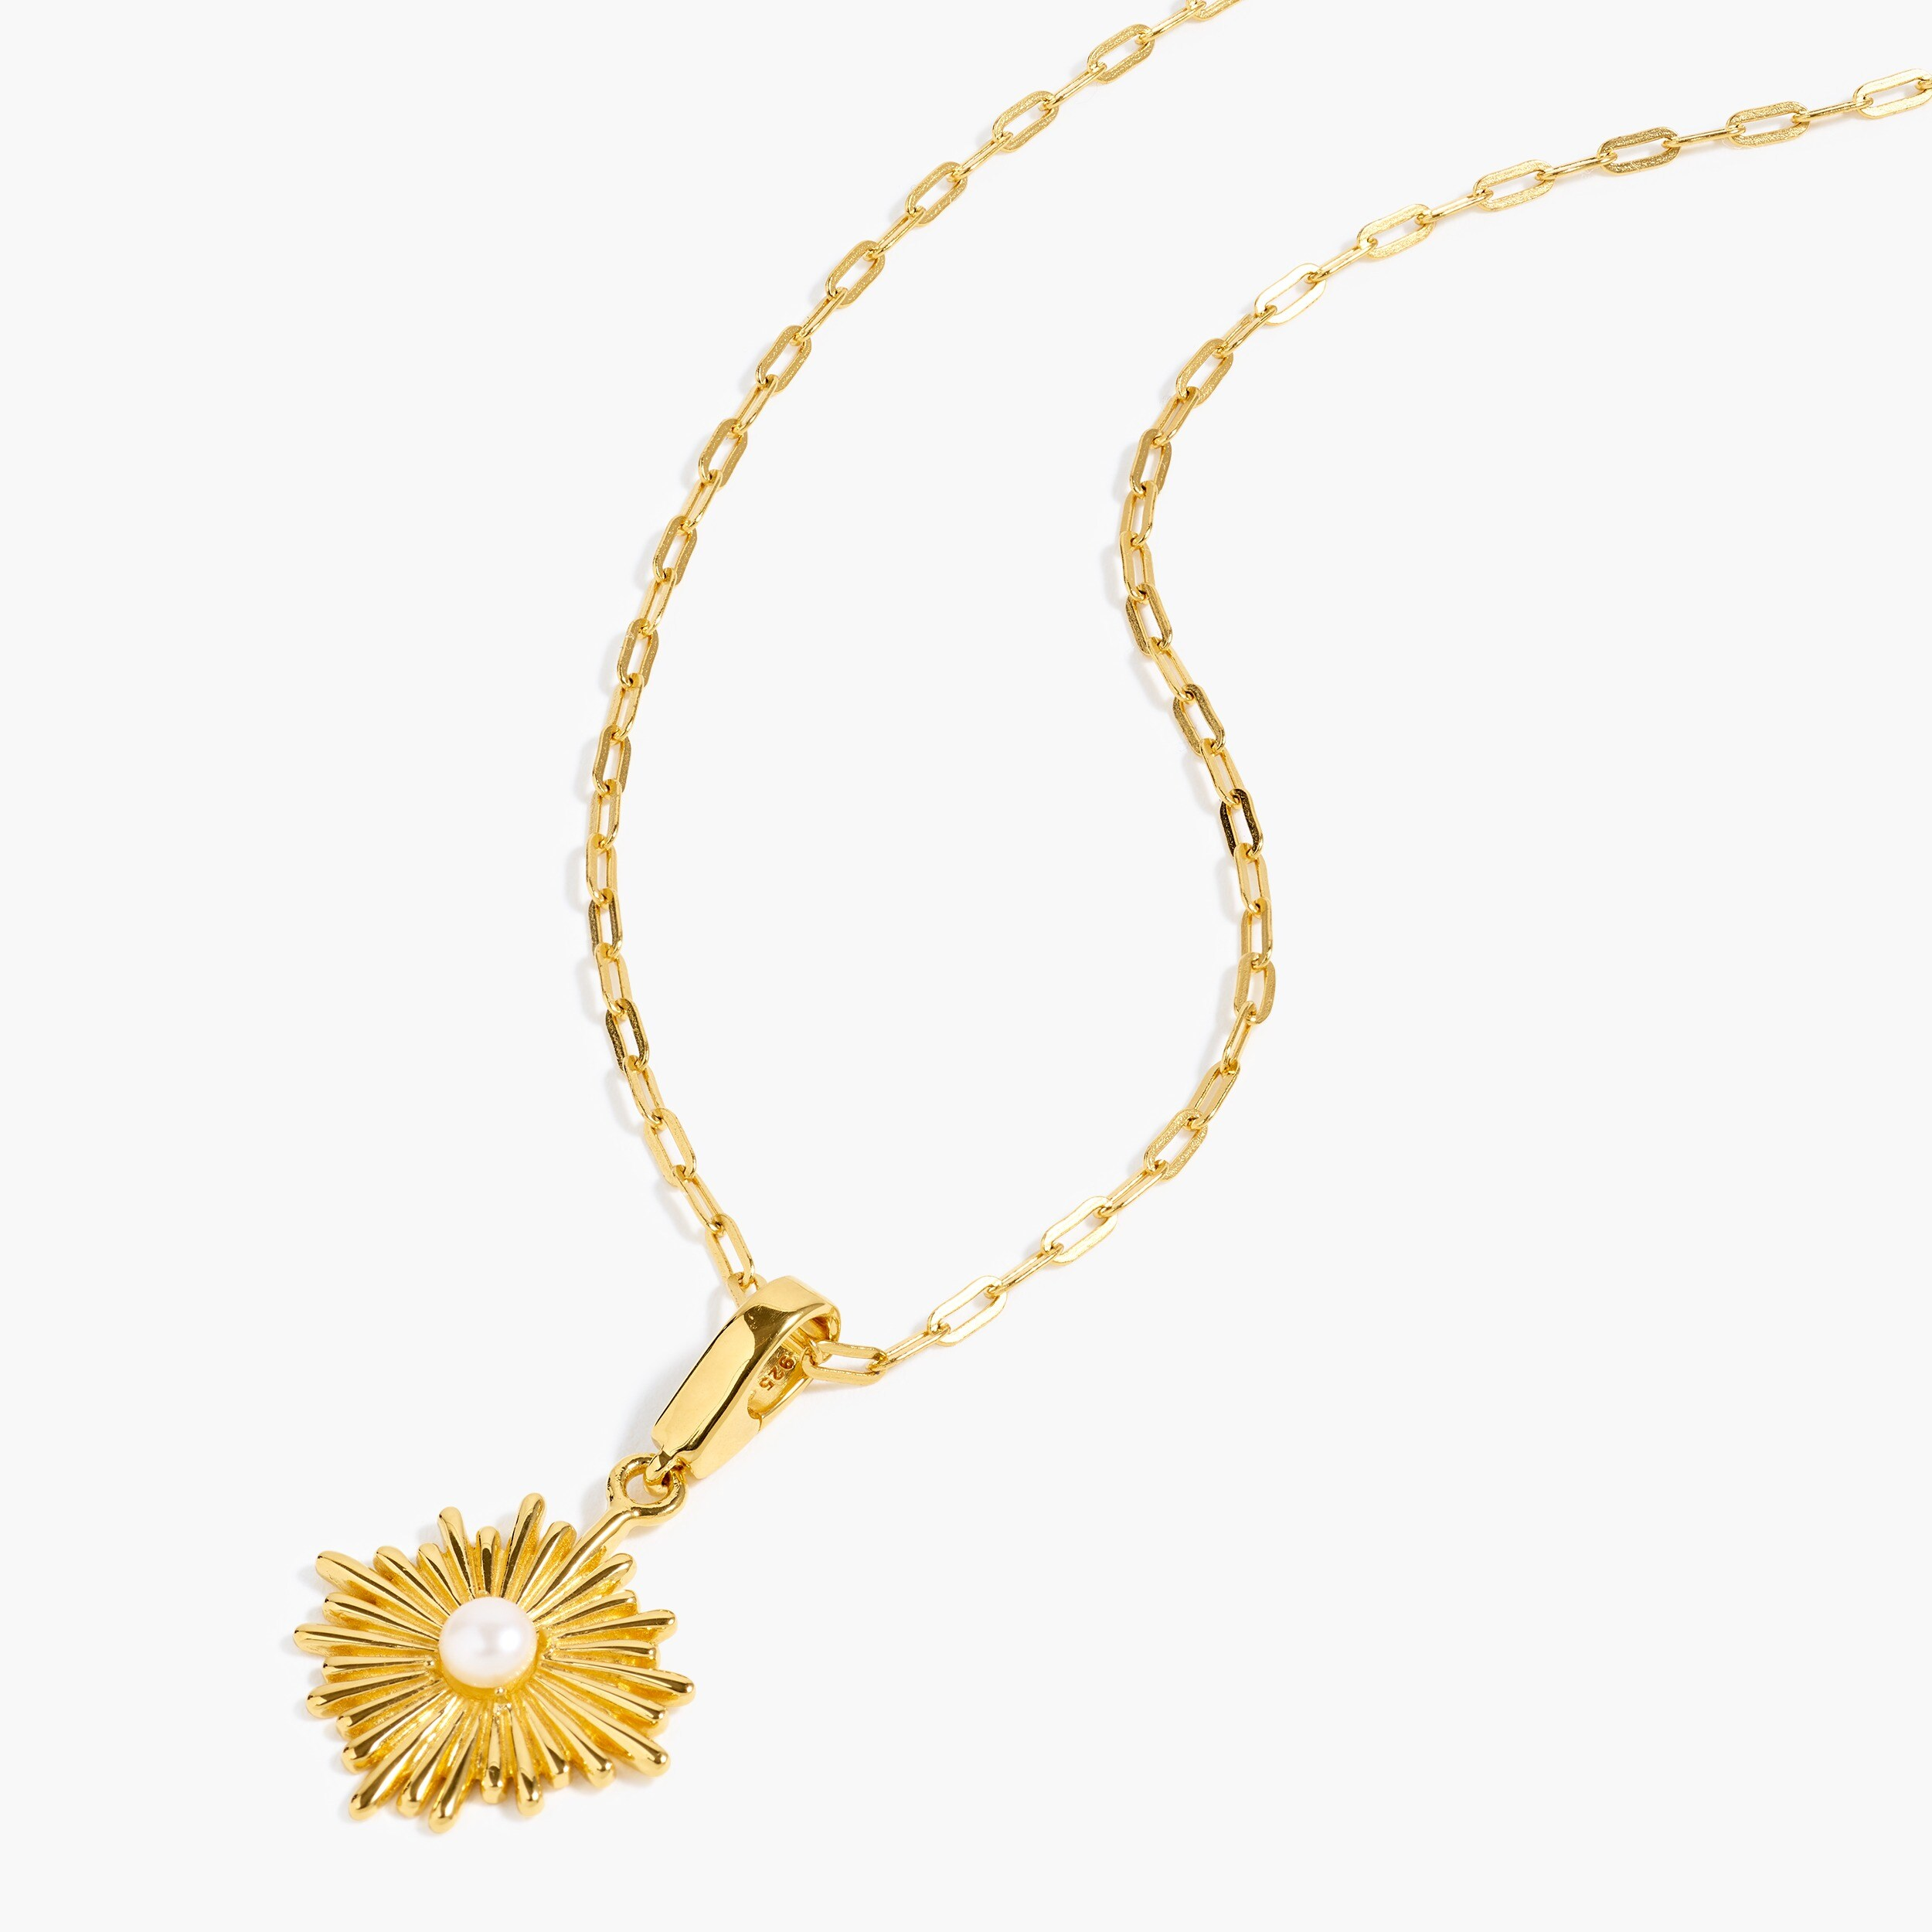 womens Demi-fine 14k gold-plated sunburst charm